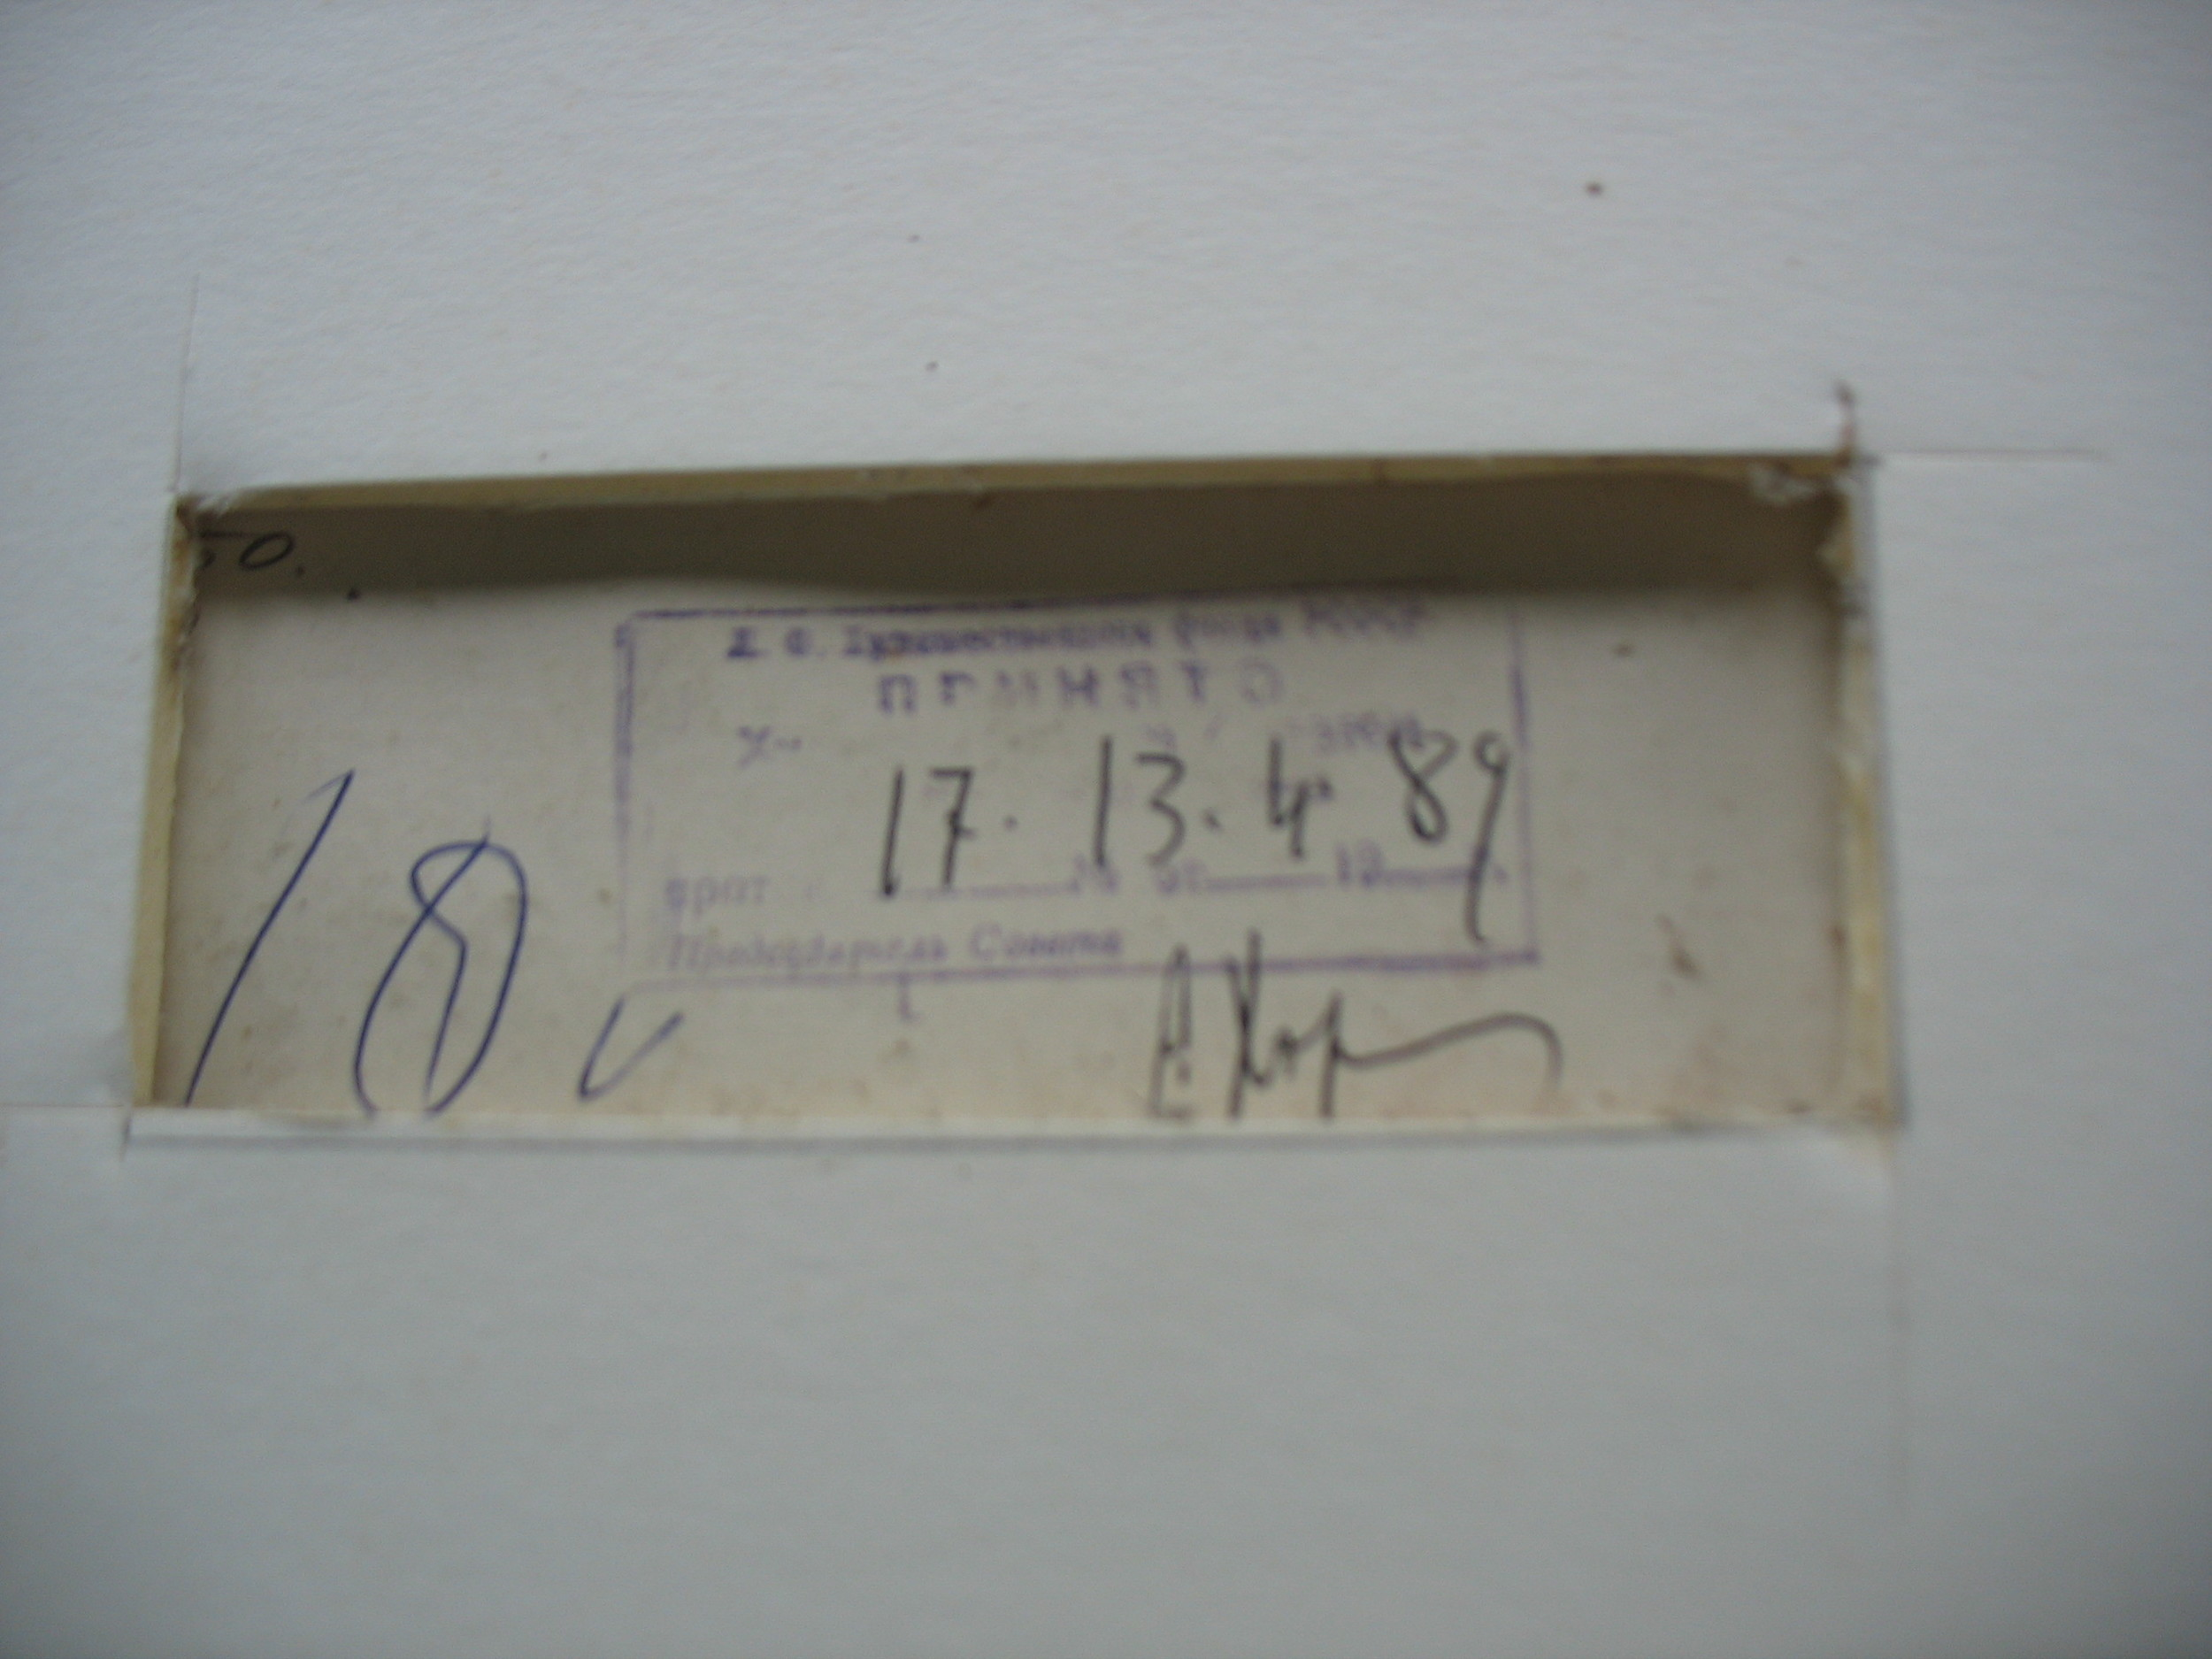 This is on back of Russian painting showing information pertaining to the piece.